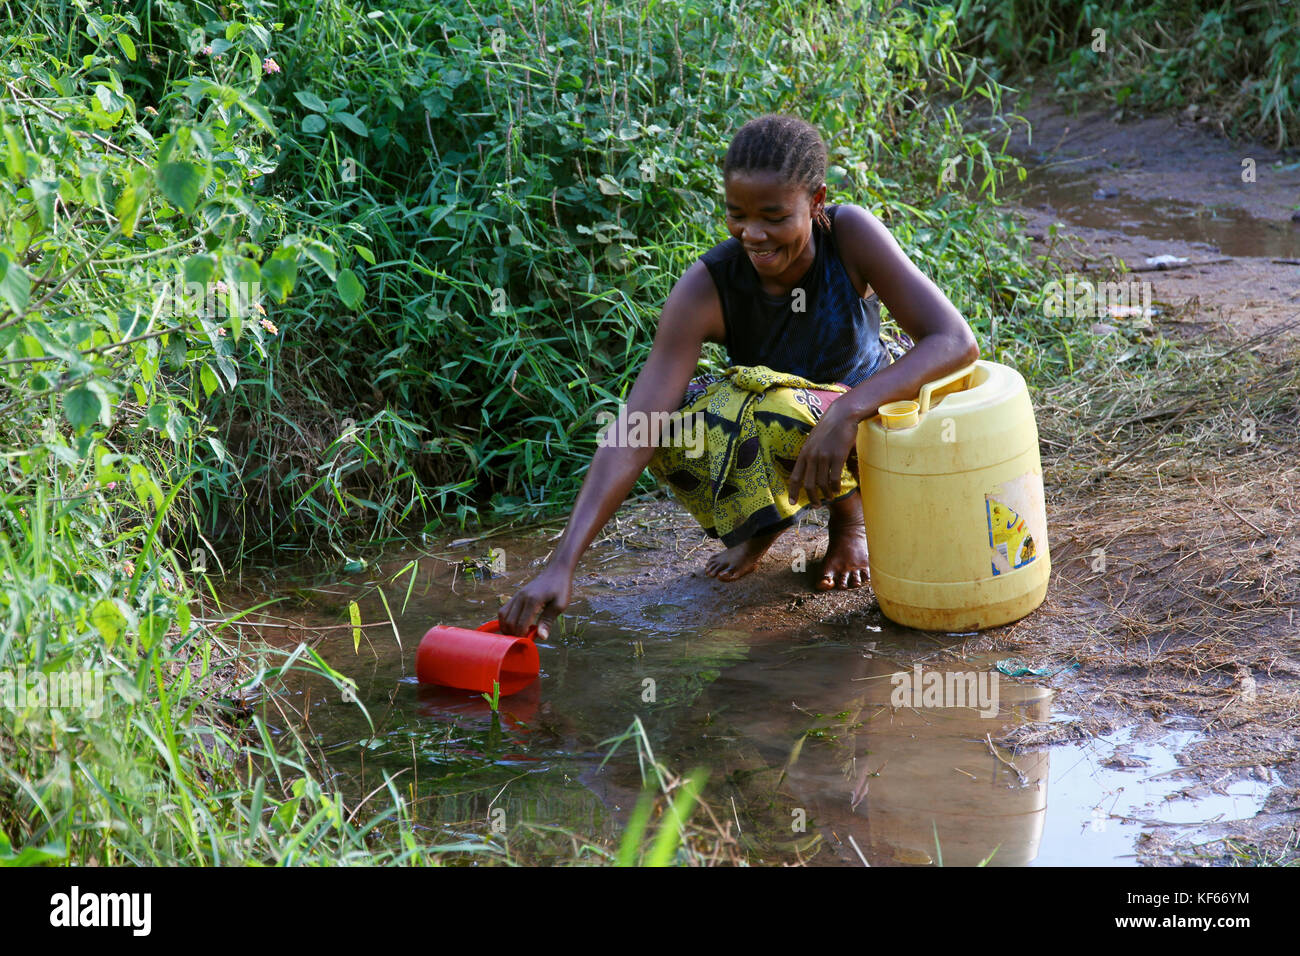 Living in the Kenya Slum Aerias - Woman collecting drinking water from source - Stock Image